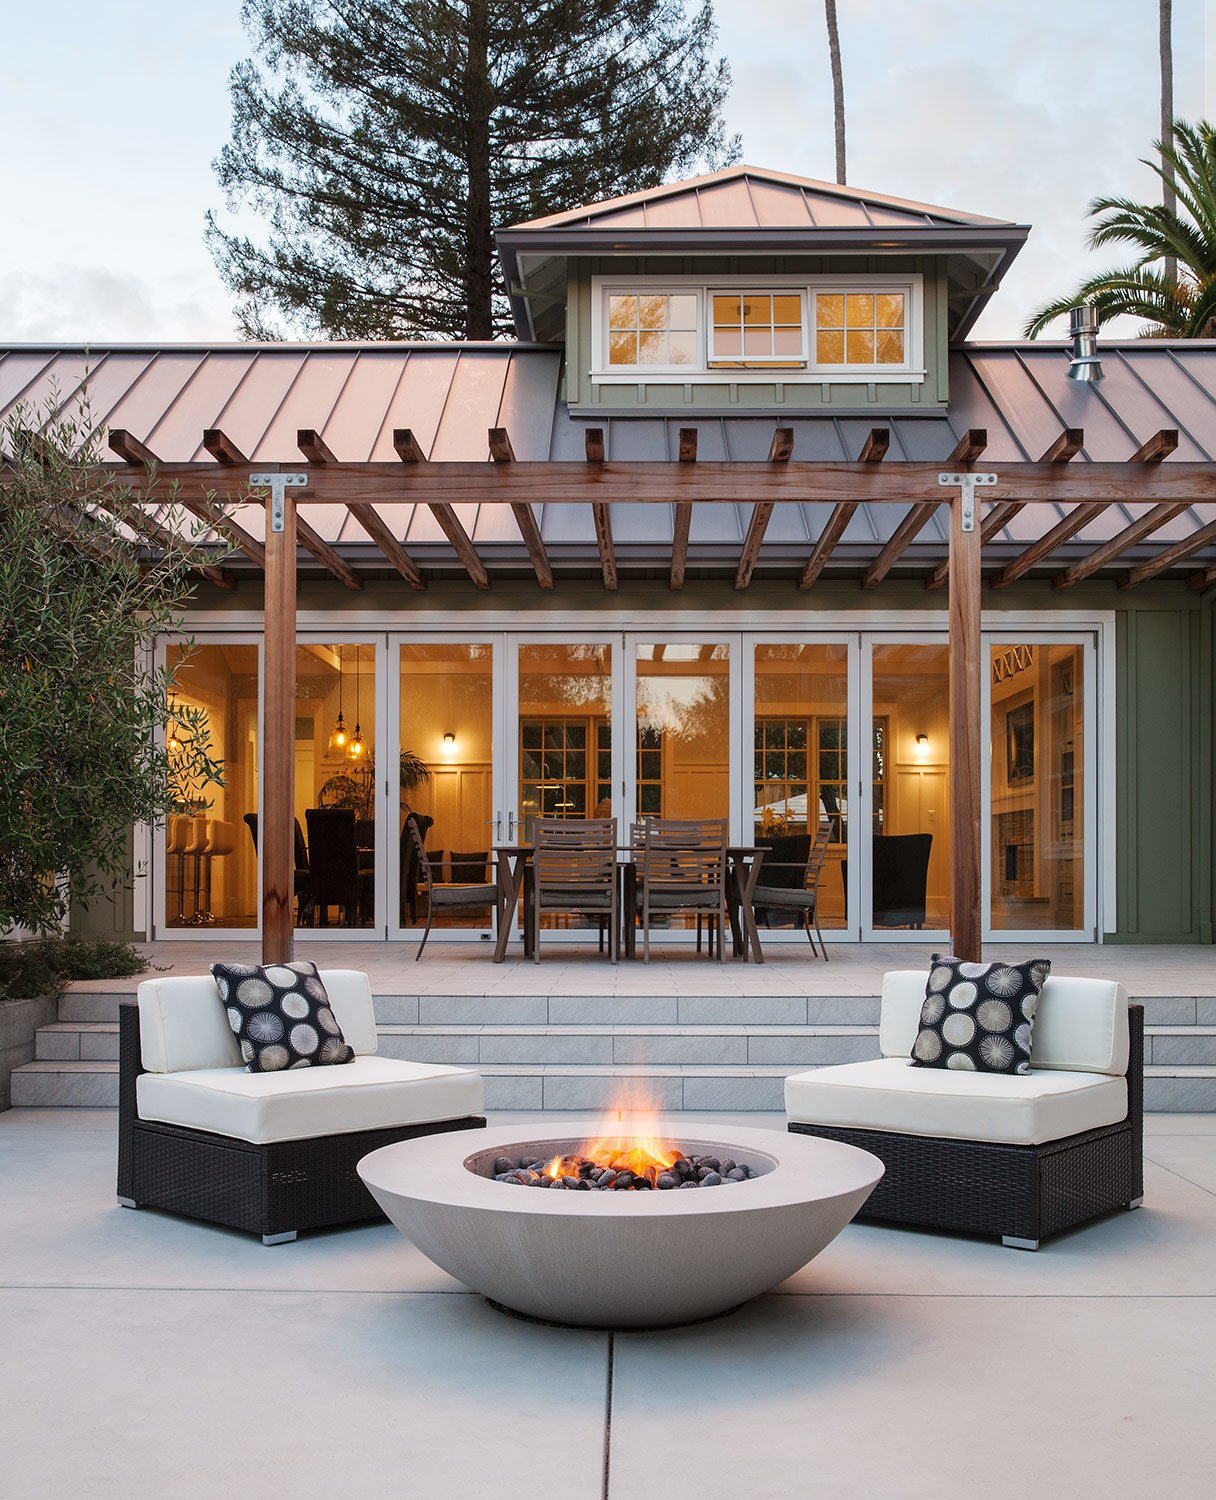 The generous outdoor living area has room for dining and relaxation.  By Arterra Landscape Architects  Talk of the Neighborhood by Arterra Landscape Architects